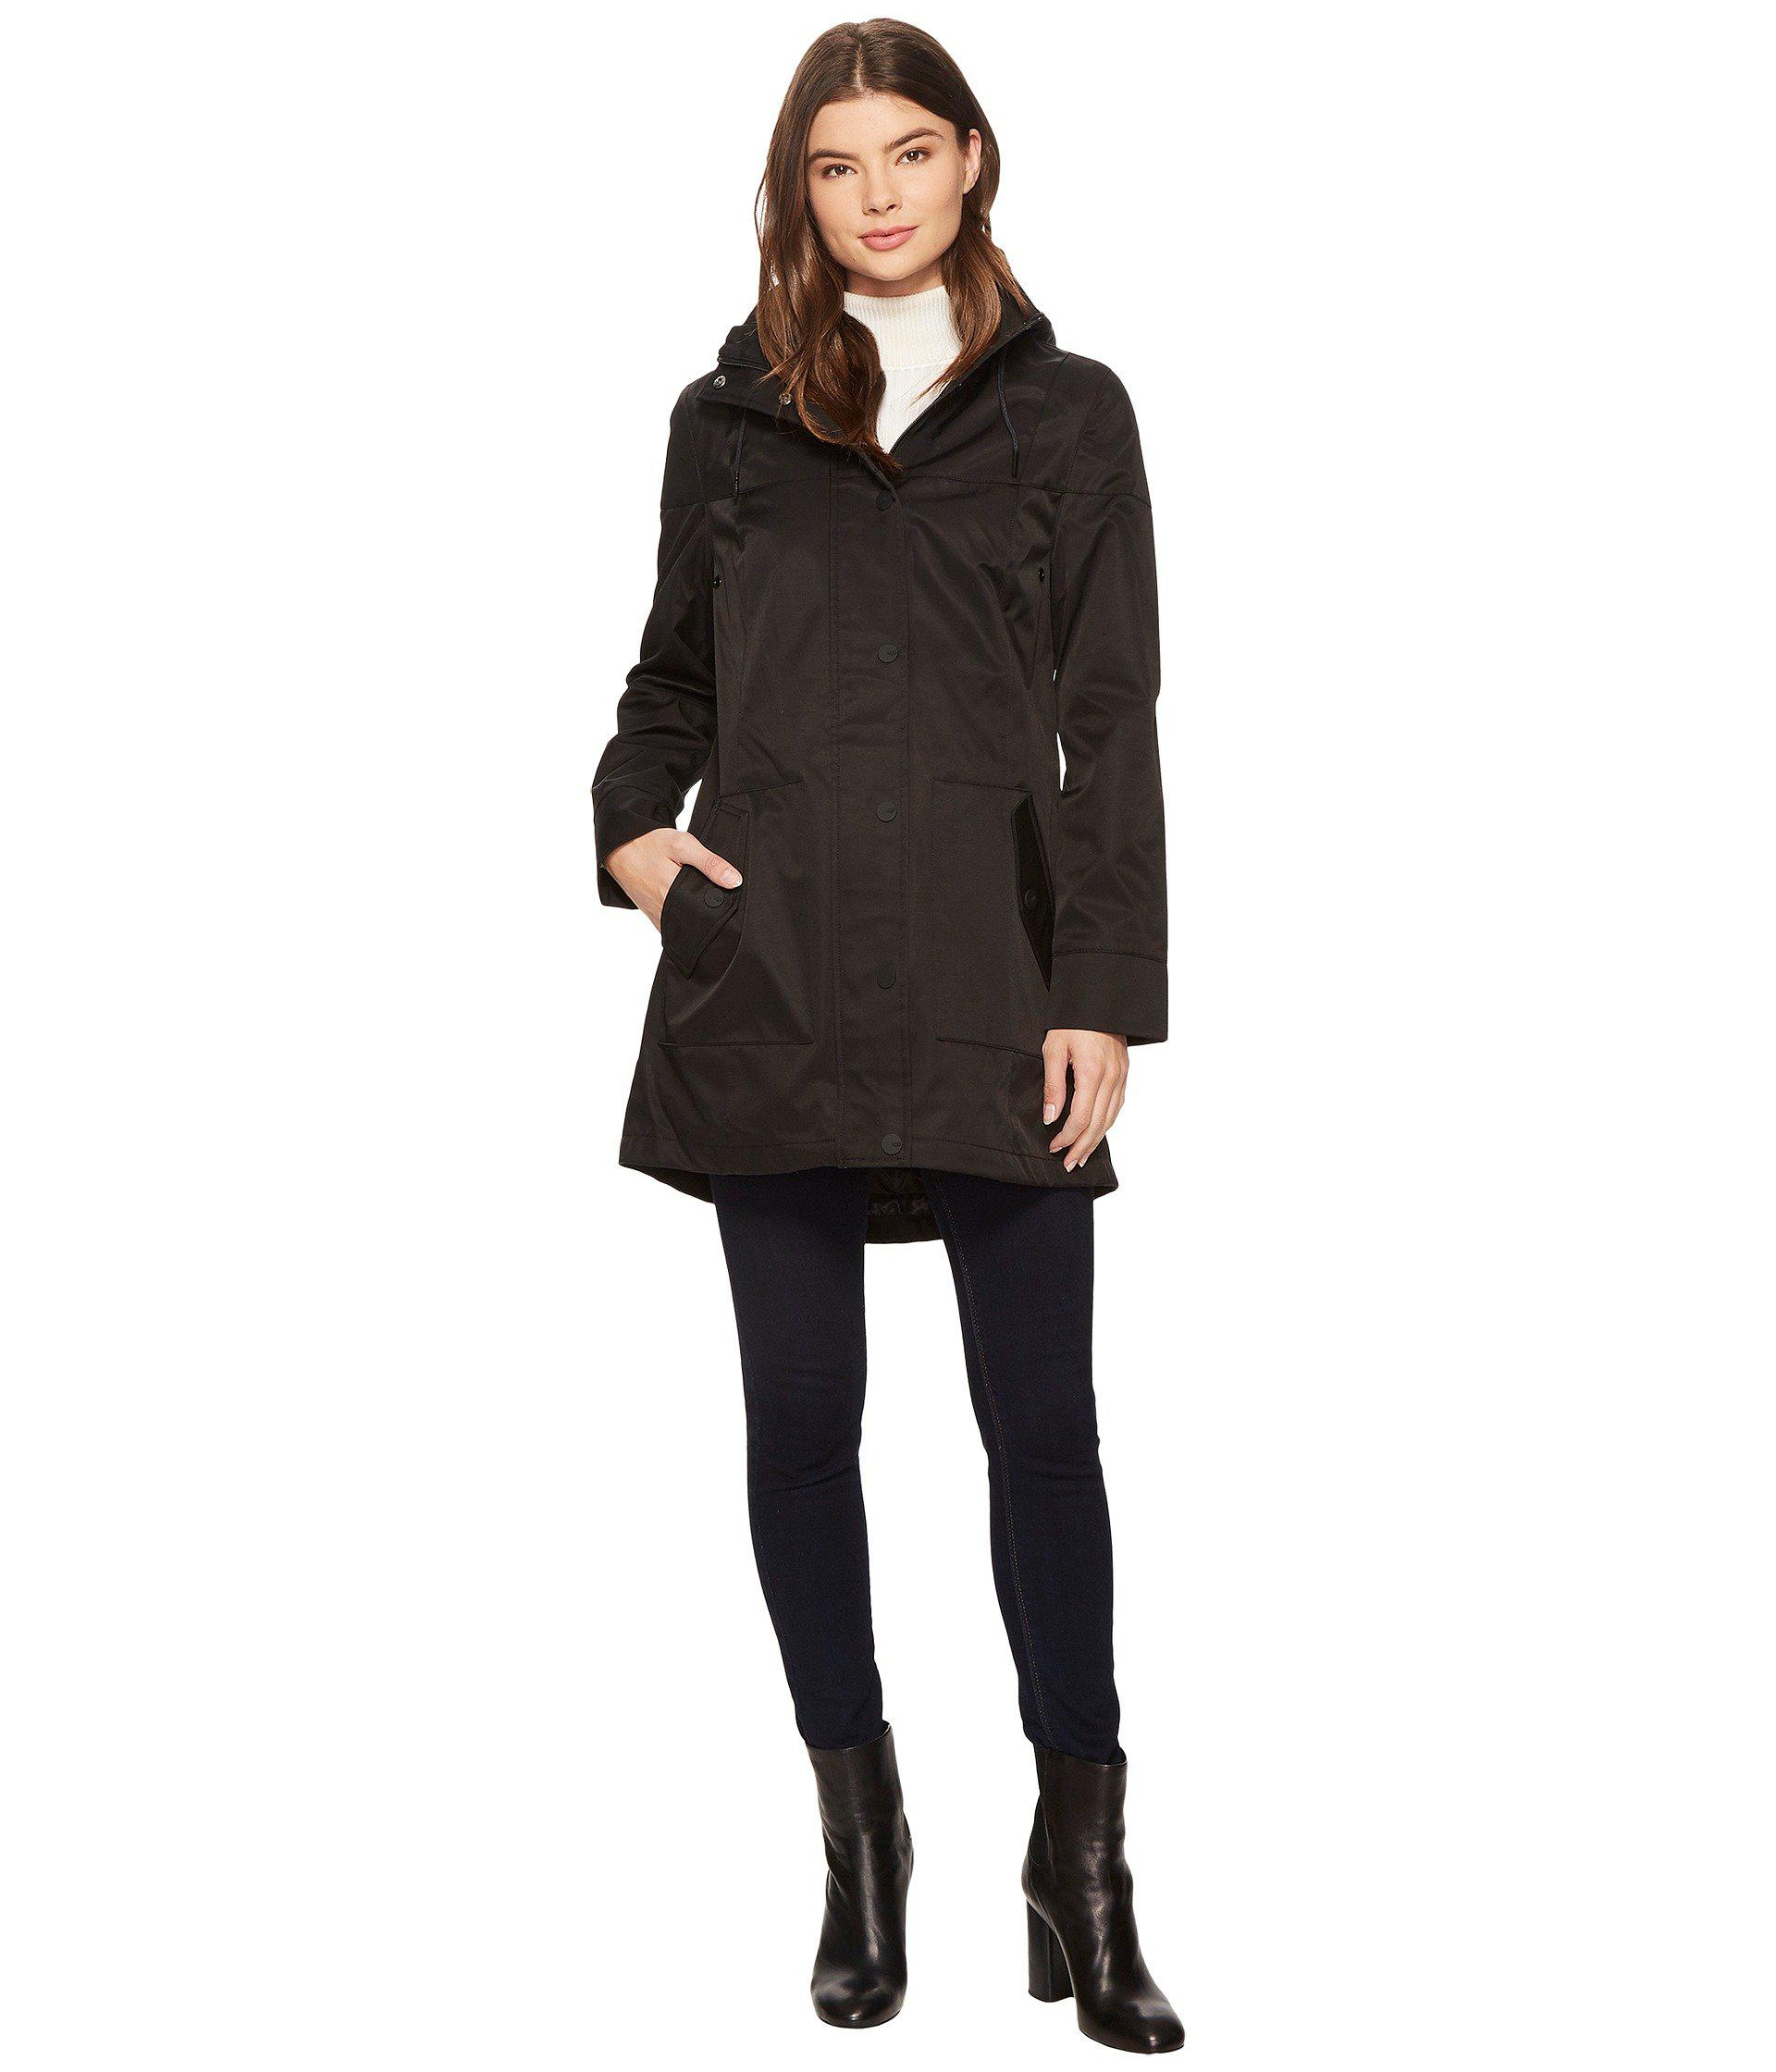 Lyst ugg trench rain jacket in black ugg coats trench jpg 1920x2240 Ugg  coats trench 3fc6d7cfb